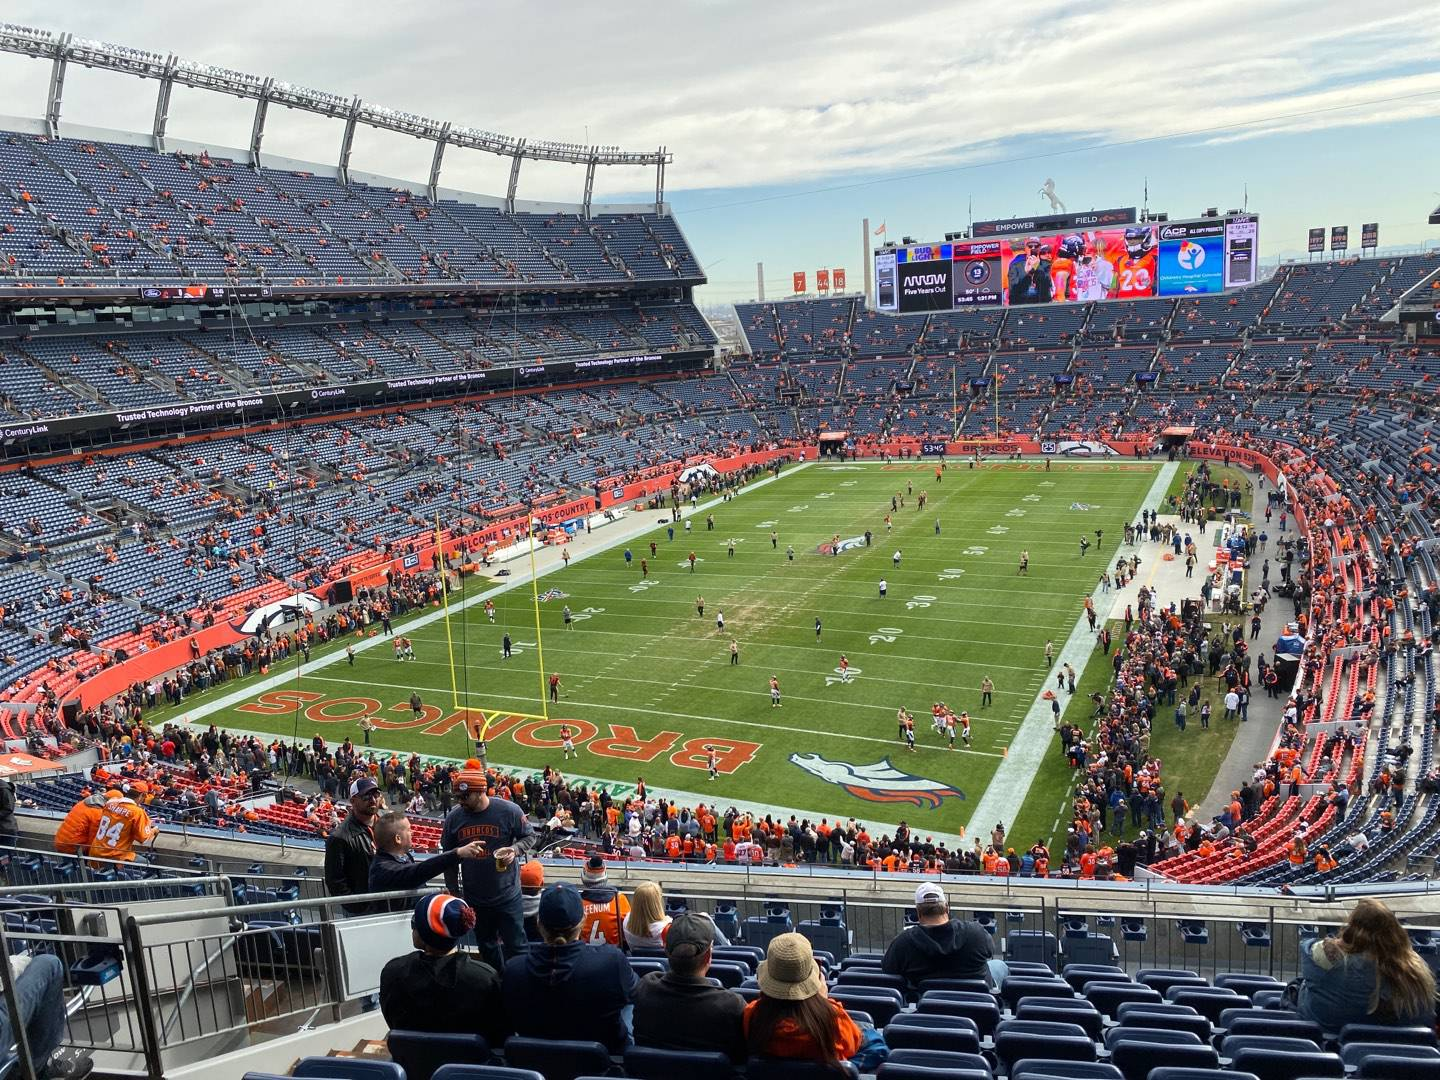 Empower Field at Mile High Stadium Section 320 Row 13 Seat 14